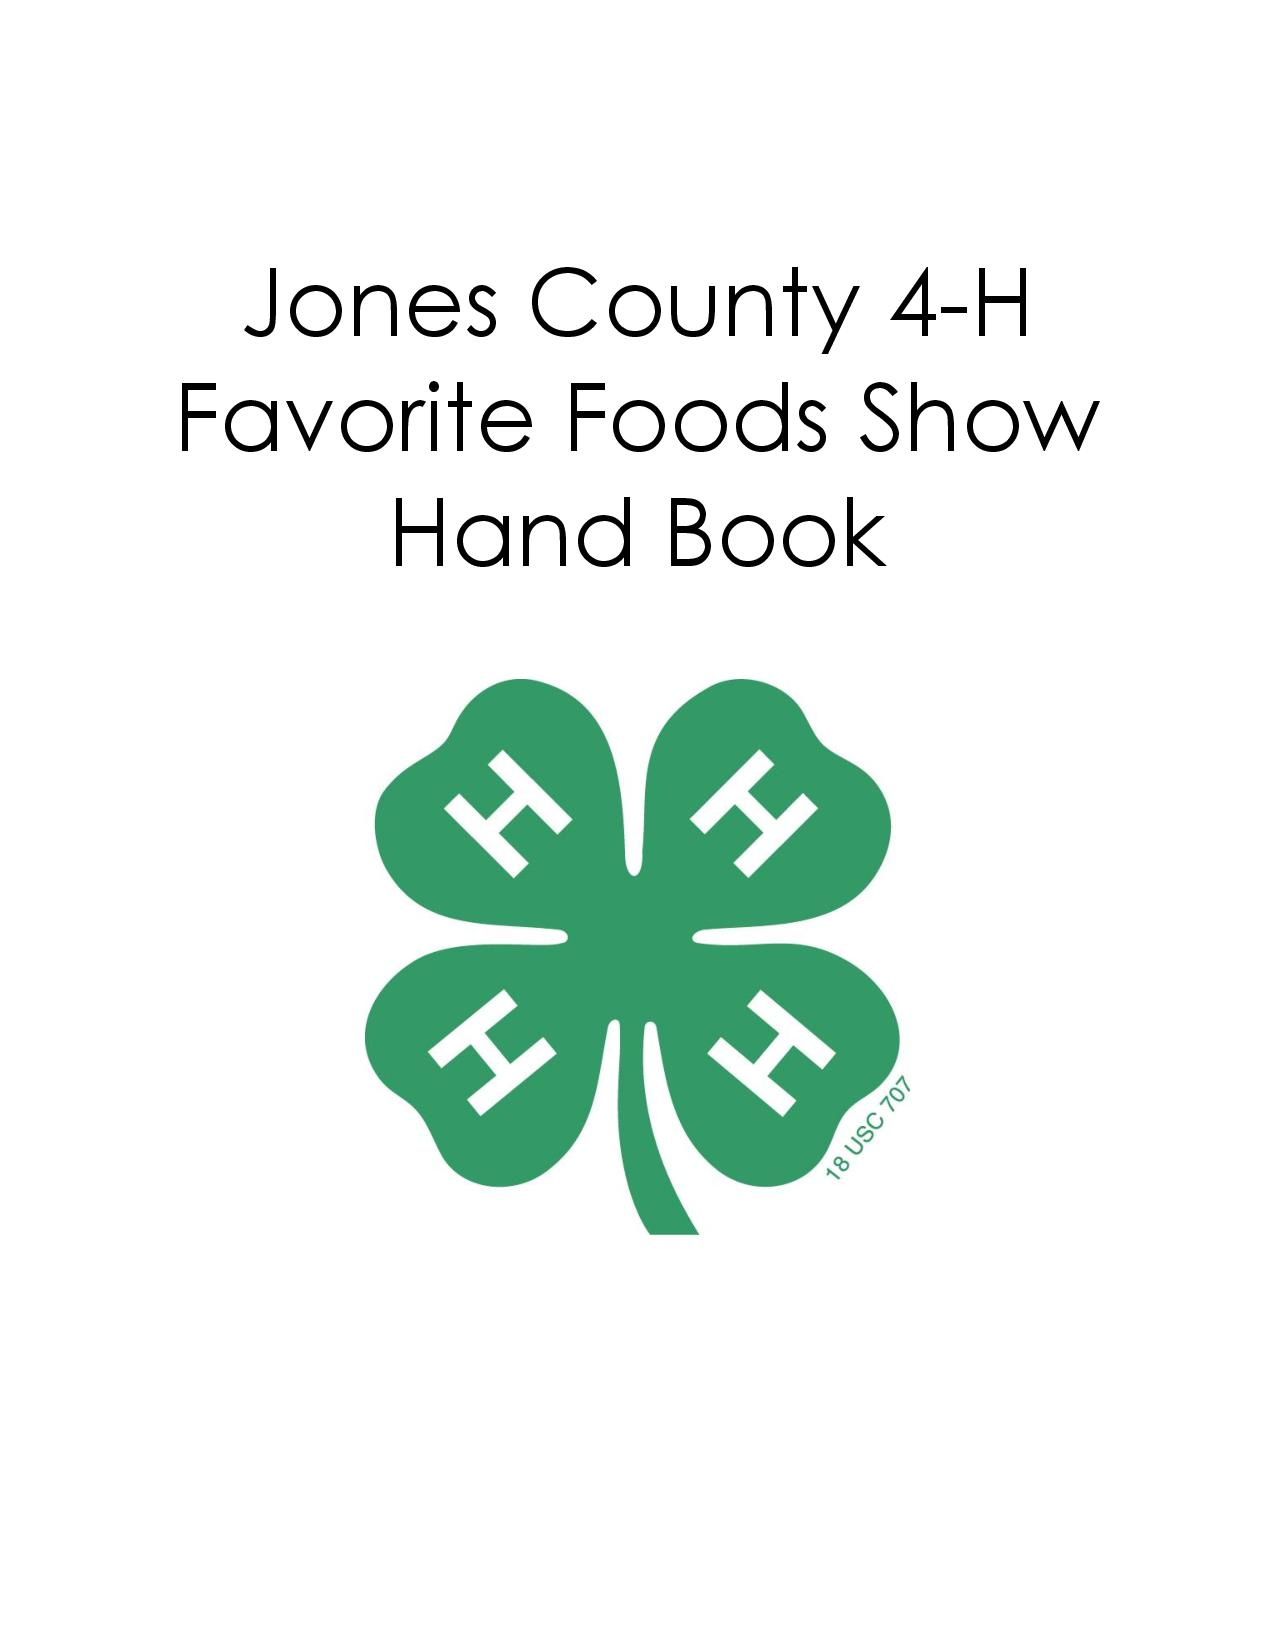 Favorite Foods Show Handbook cover image